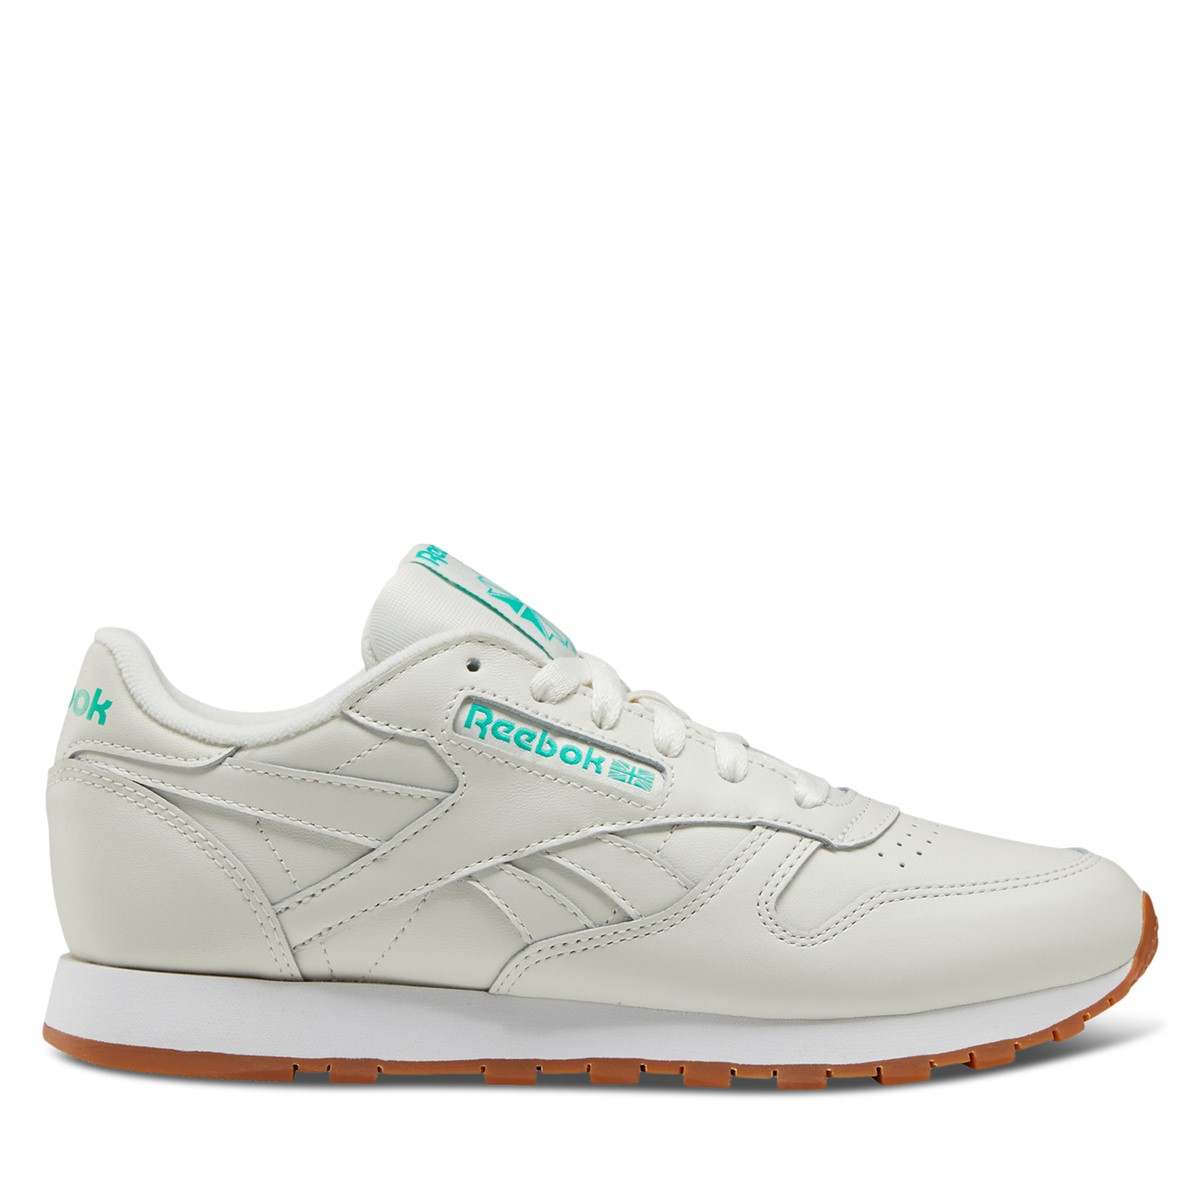 Women's Classic Leather Sneakers in Off-White/Green